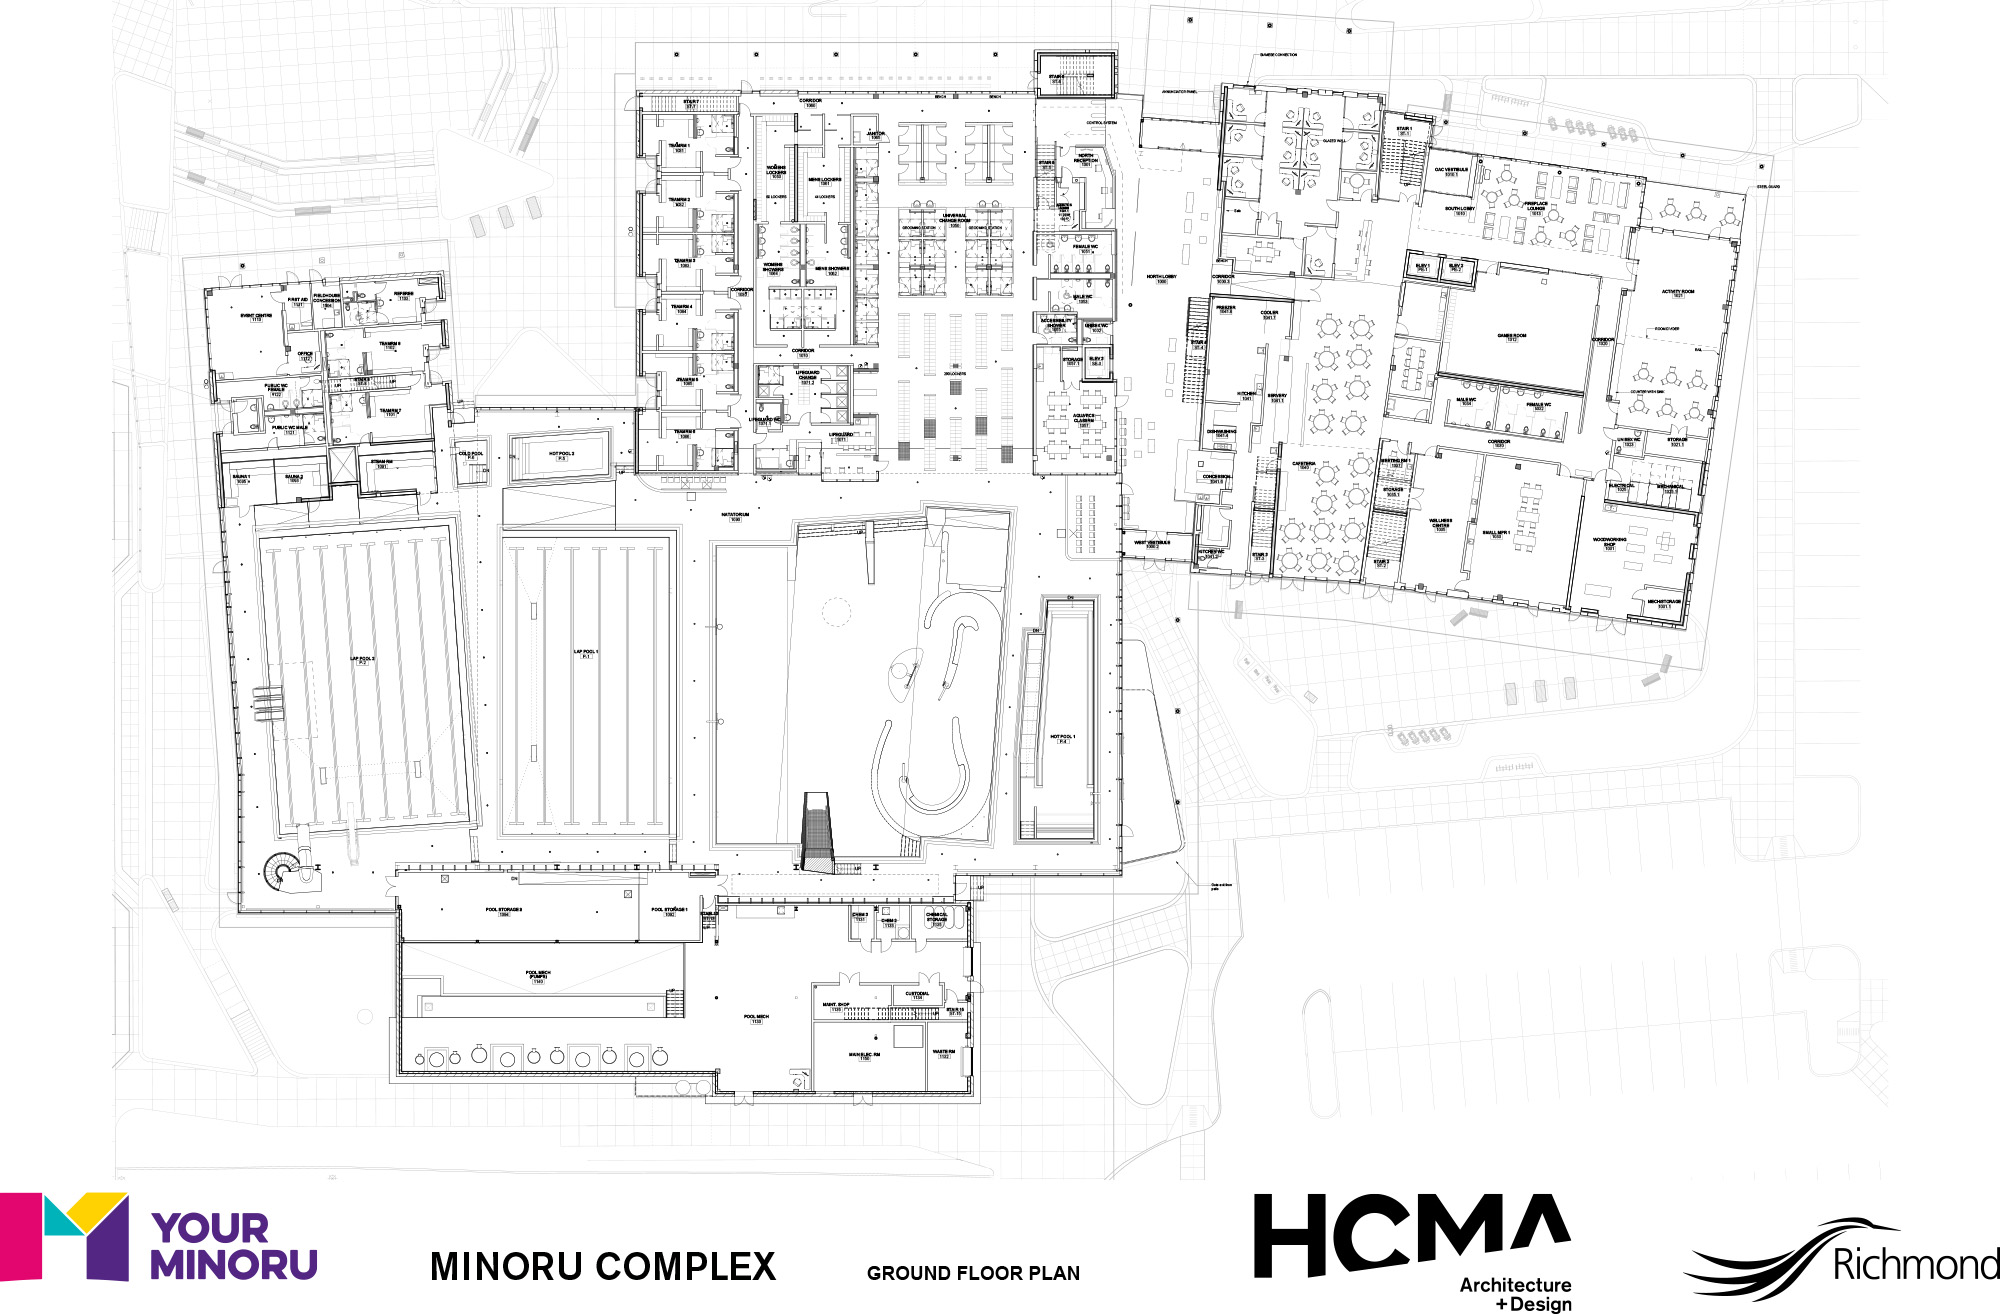 Minoru Complex - Ground Floor Plan - January 2016